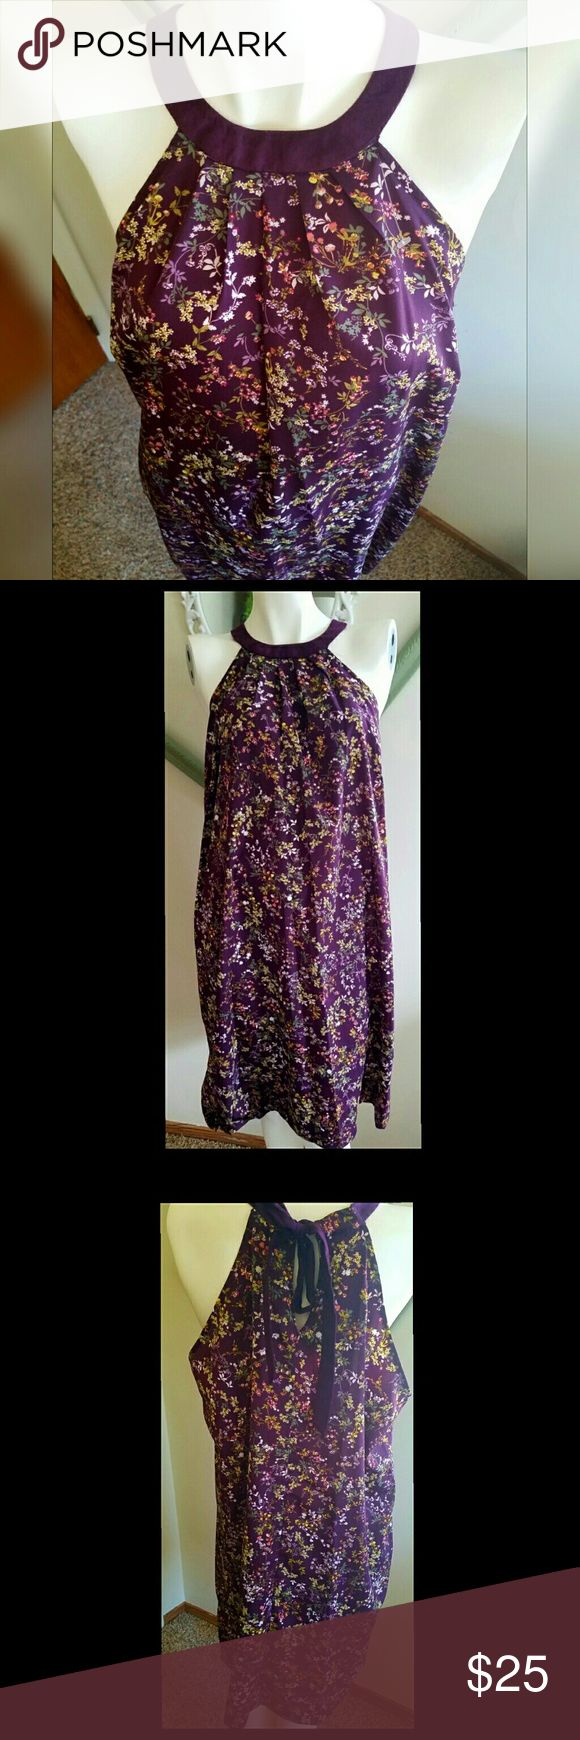 "NWOT. Gorgeous Purple Floral Dress NWOT. Purple with sage, green, lavender and coral. Suede tie around collar. Has pockets. Keyhole in back. 100% polyester and neck tie is faux suede. Machine washable.   Measurements  Bust 44"" Waist 39""  Hip 46.5""  Length (from collar down) 36""   Get an additional 30% off when purchasing 3 or more items using the bundle feature. Always willing to negotiate. Make an offer. Merona Dresses"